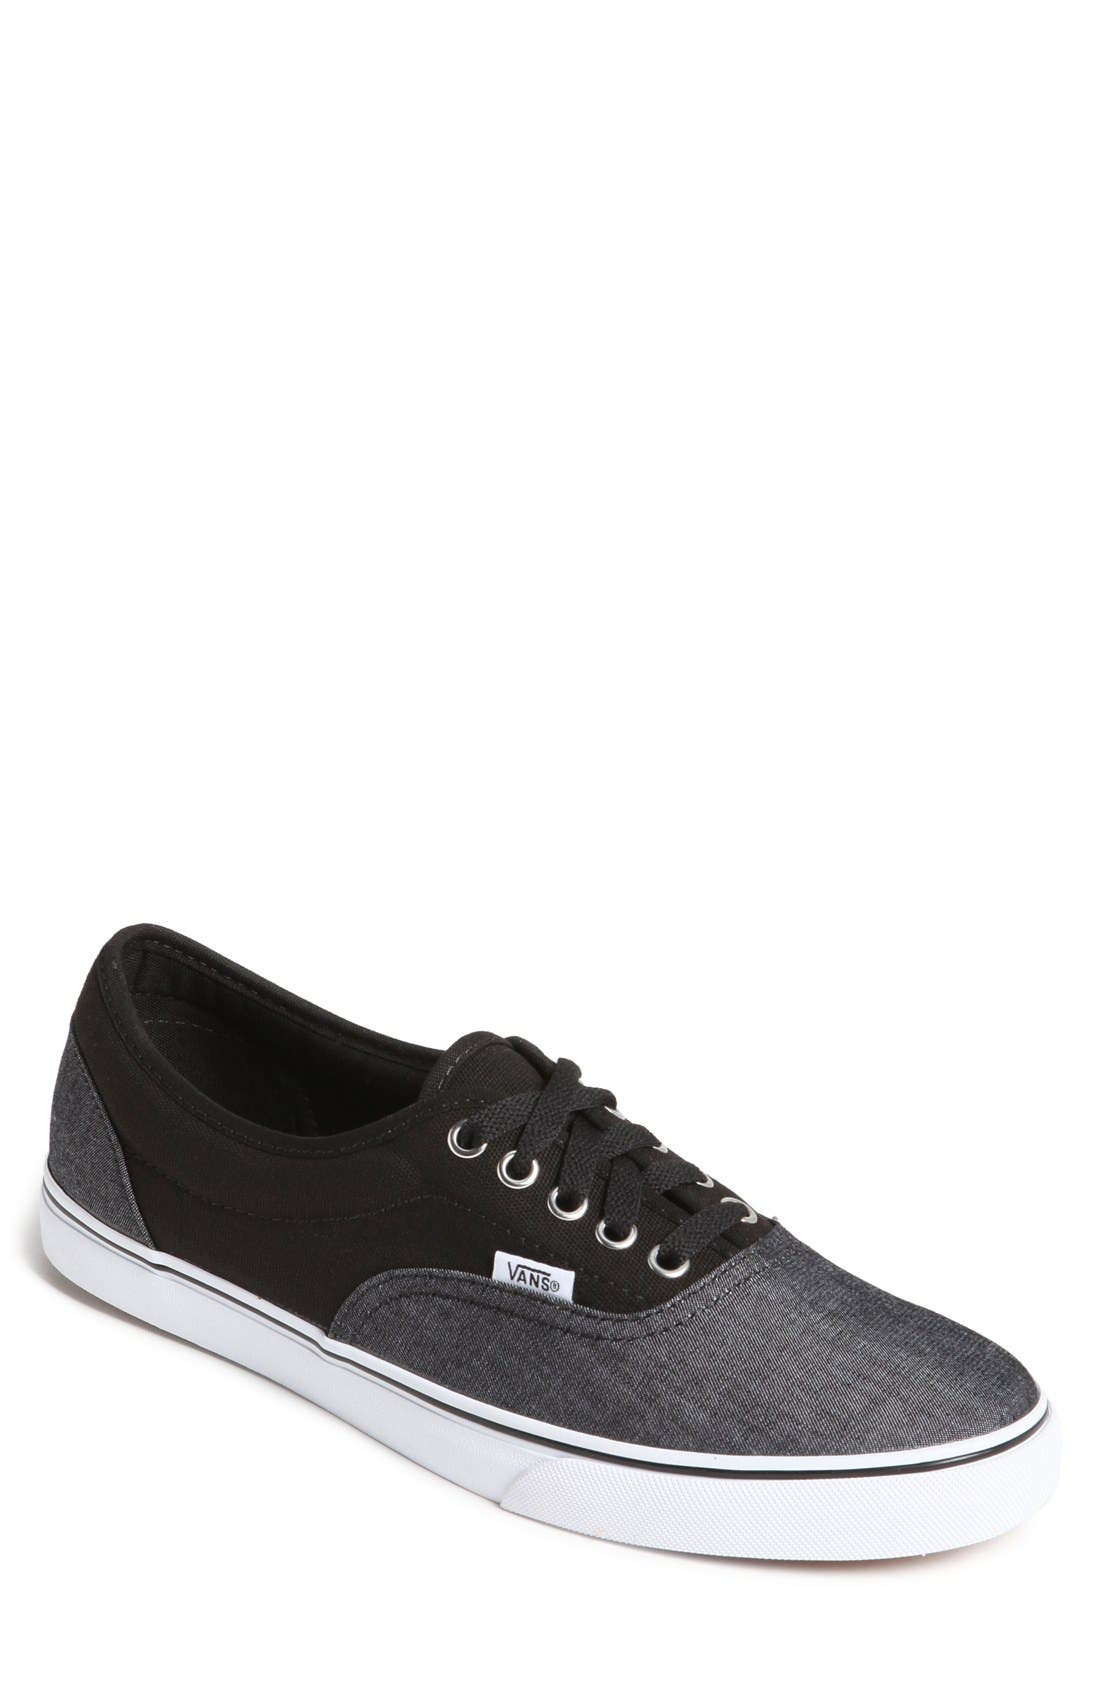 Alternate Image 1 Selected - Vans 'LPE' Sneaker (Men)